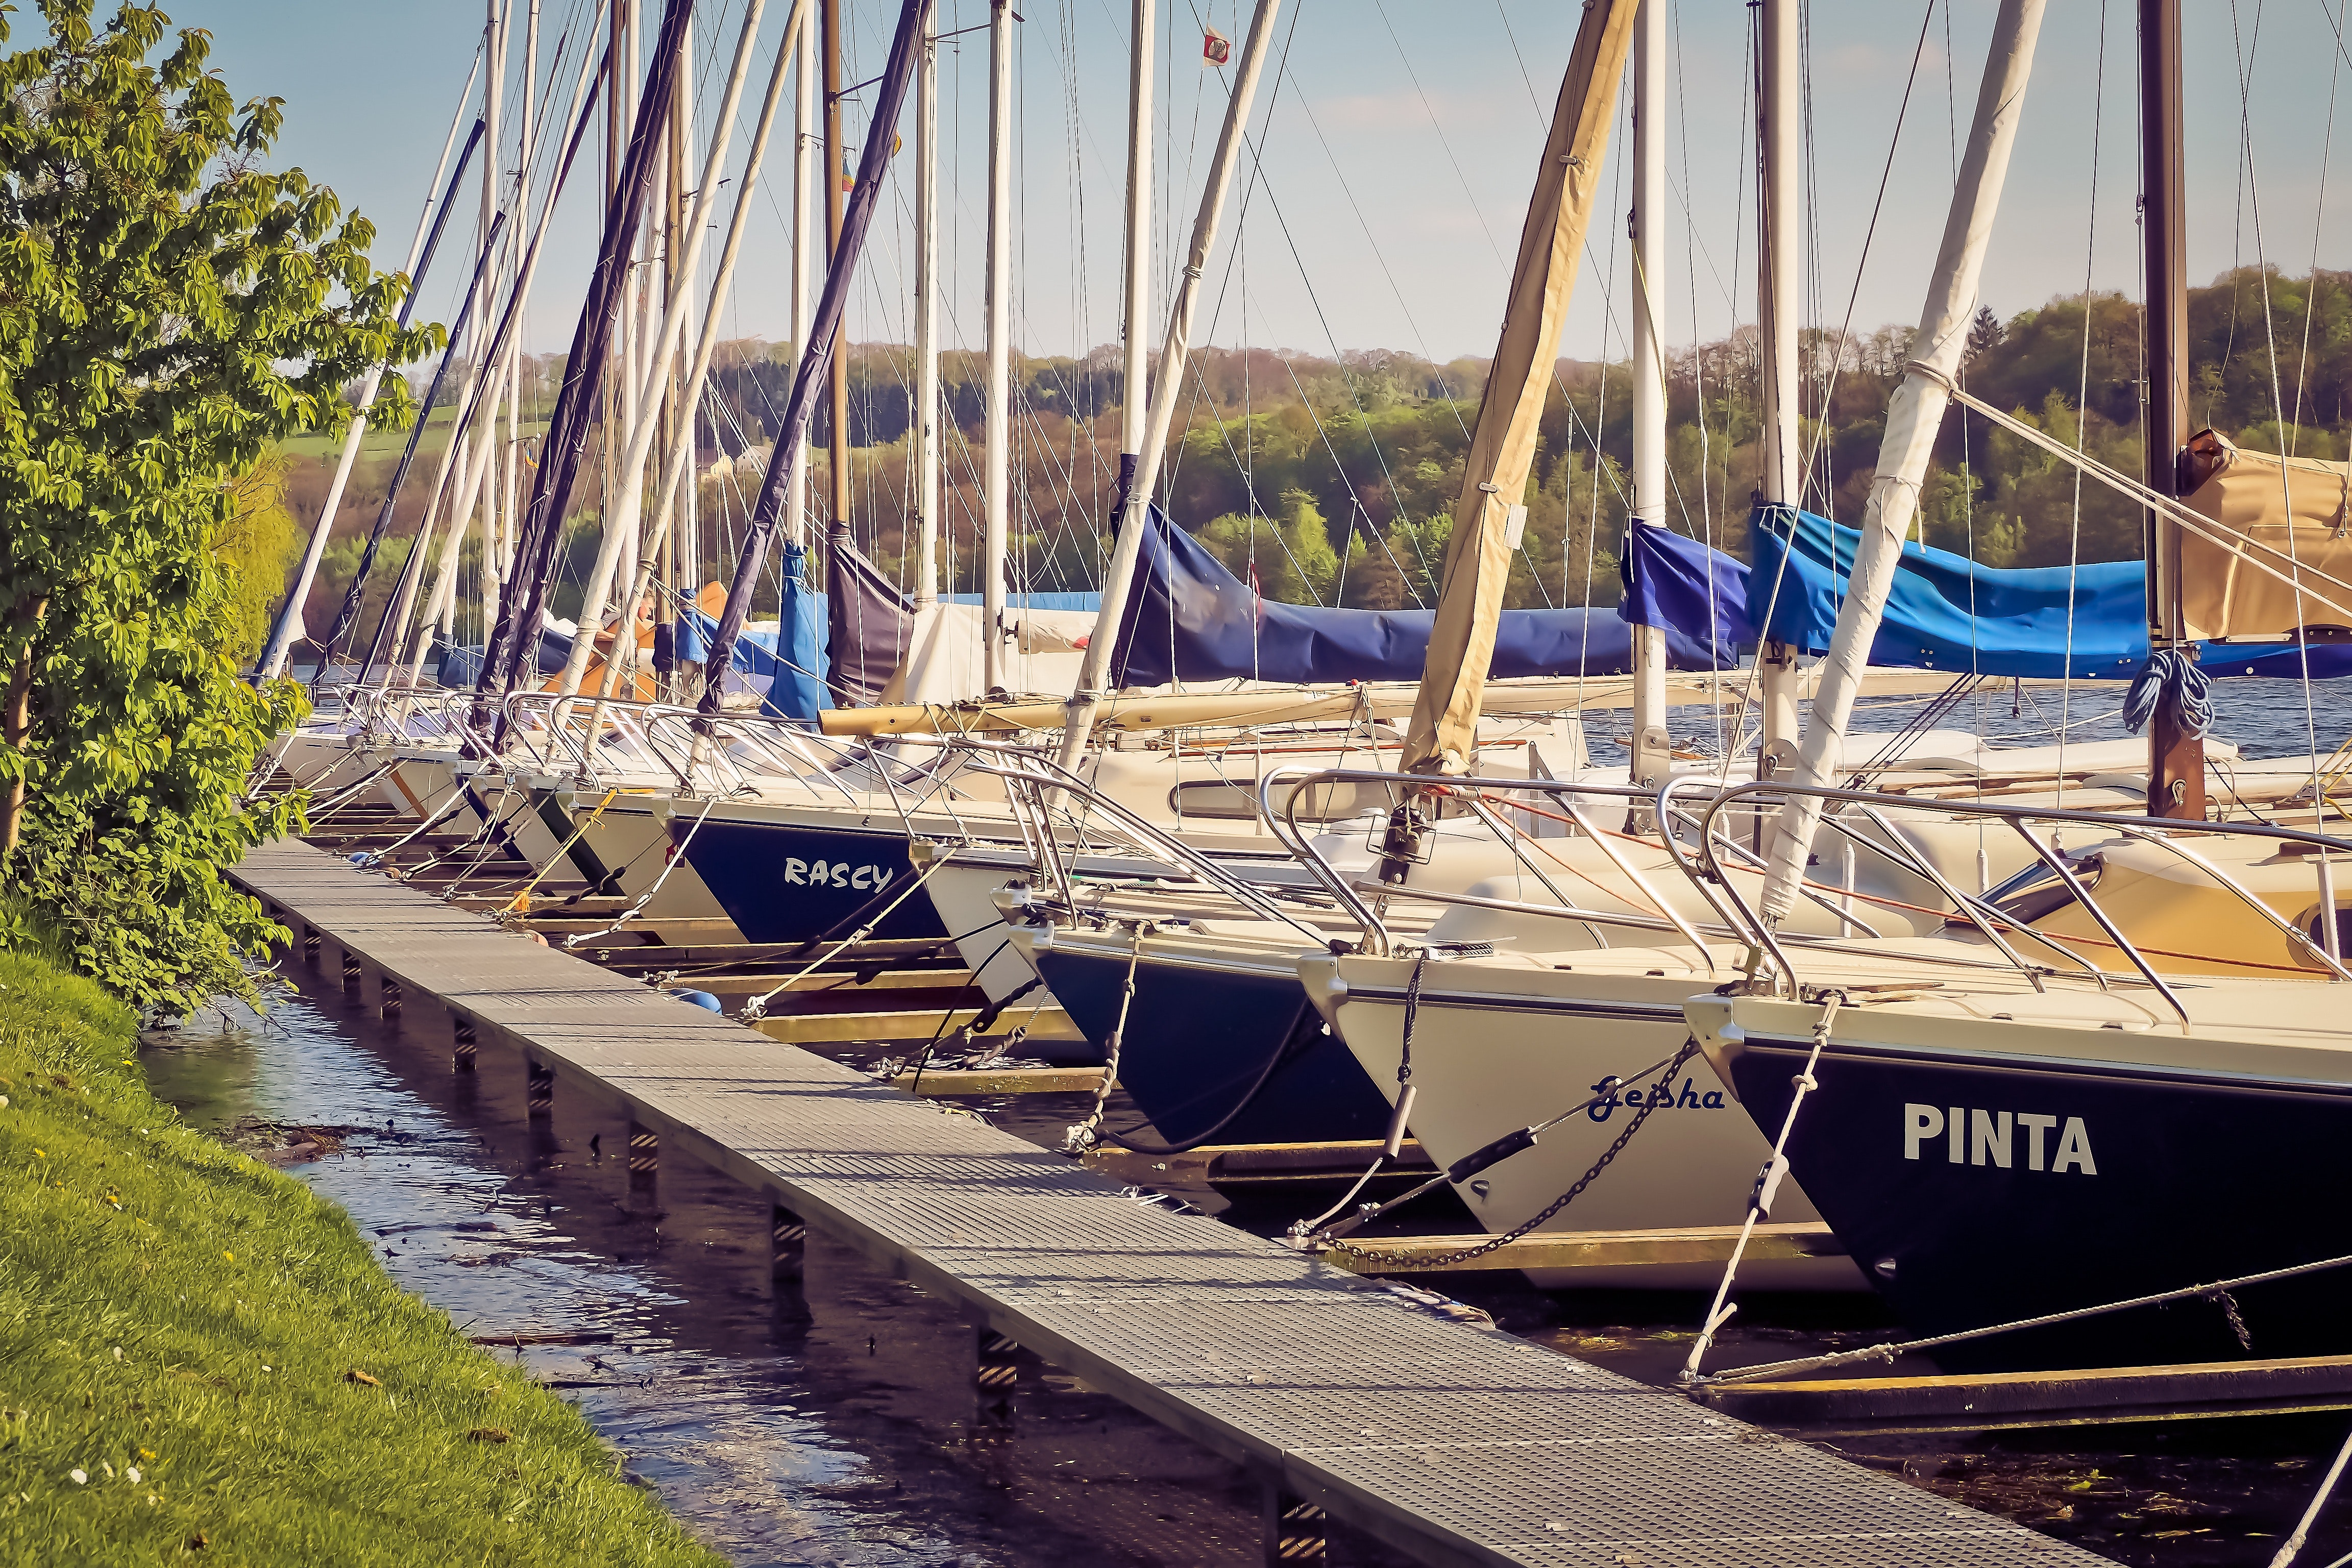 Photograph of a harbor with sailboats docked.